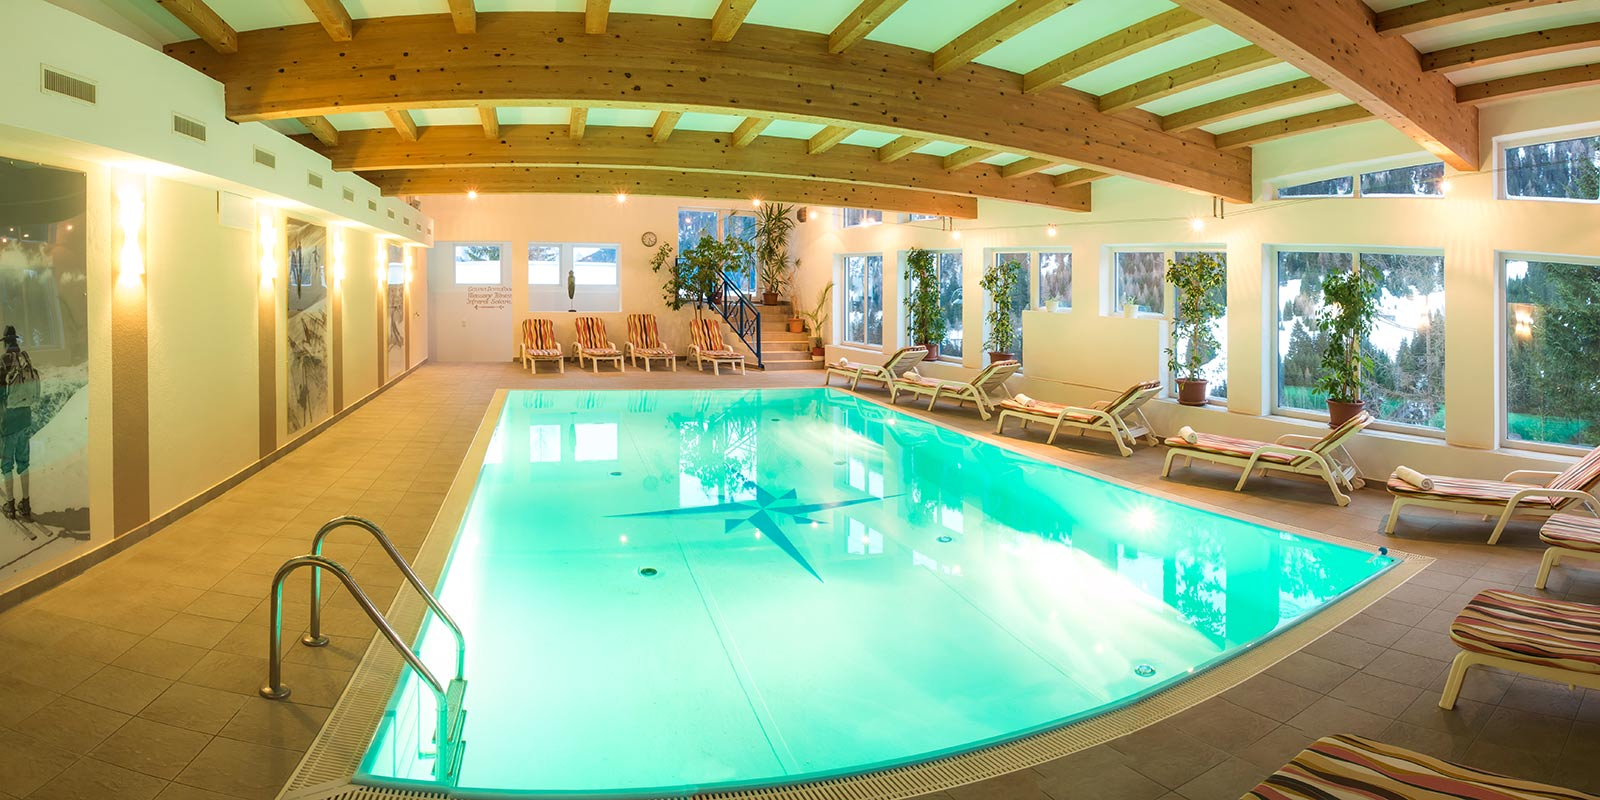 Wellness spa in the karl schranz hotel sankt anton for Best health spas in the us